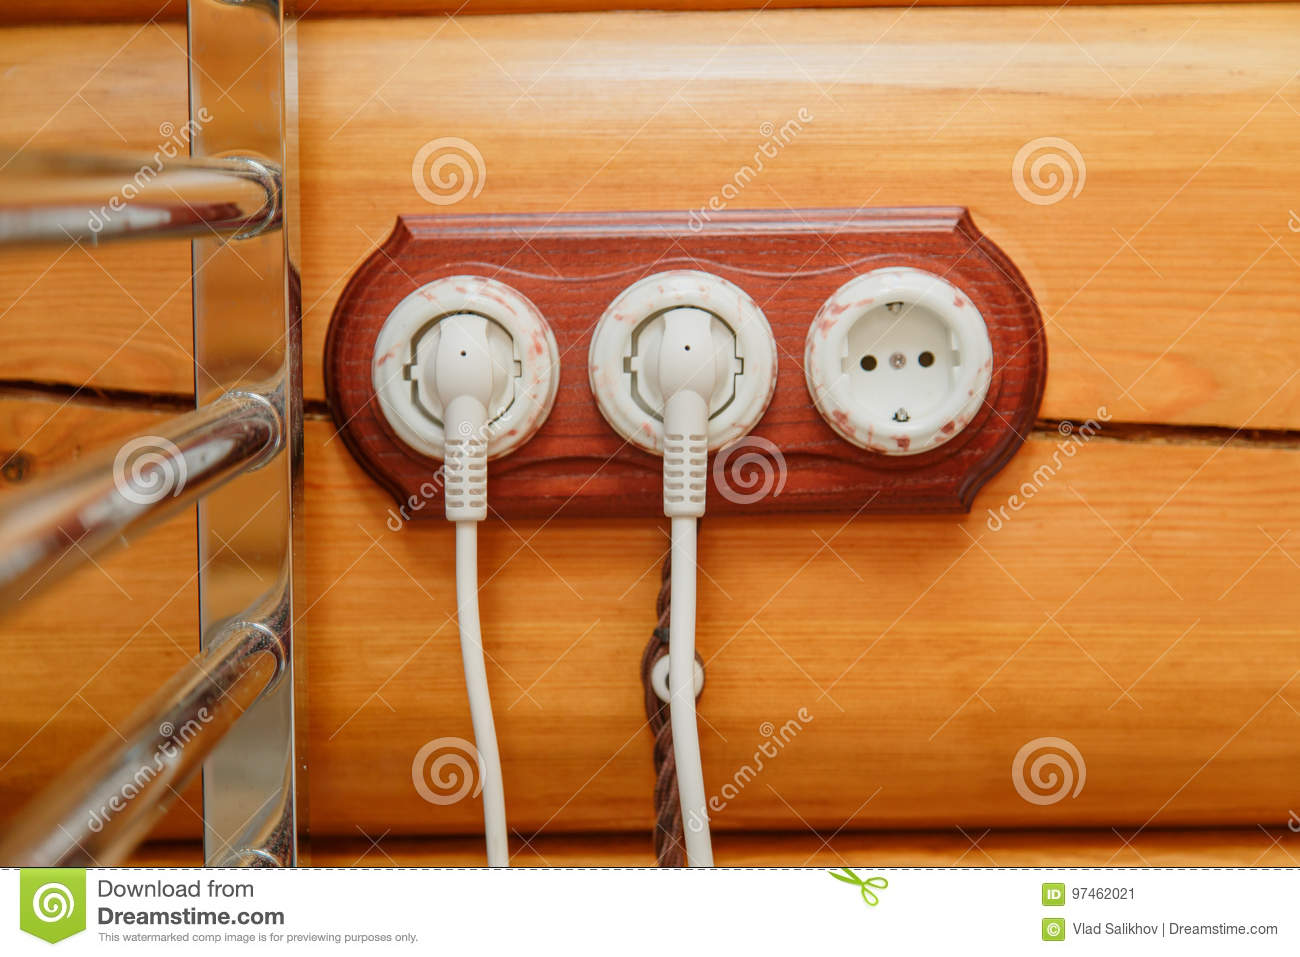 Old Fashioned Electricity Switches Socket Electric Wire In On A Wiring Light Switch And Download Wooden Wall